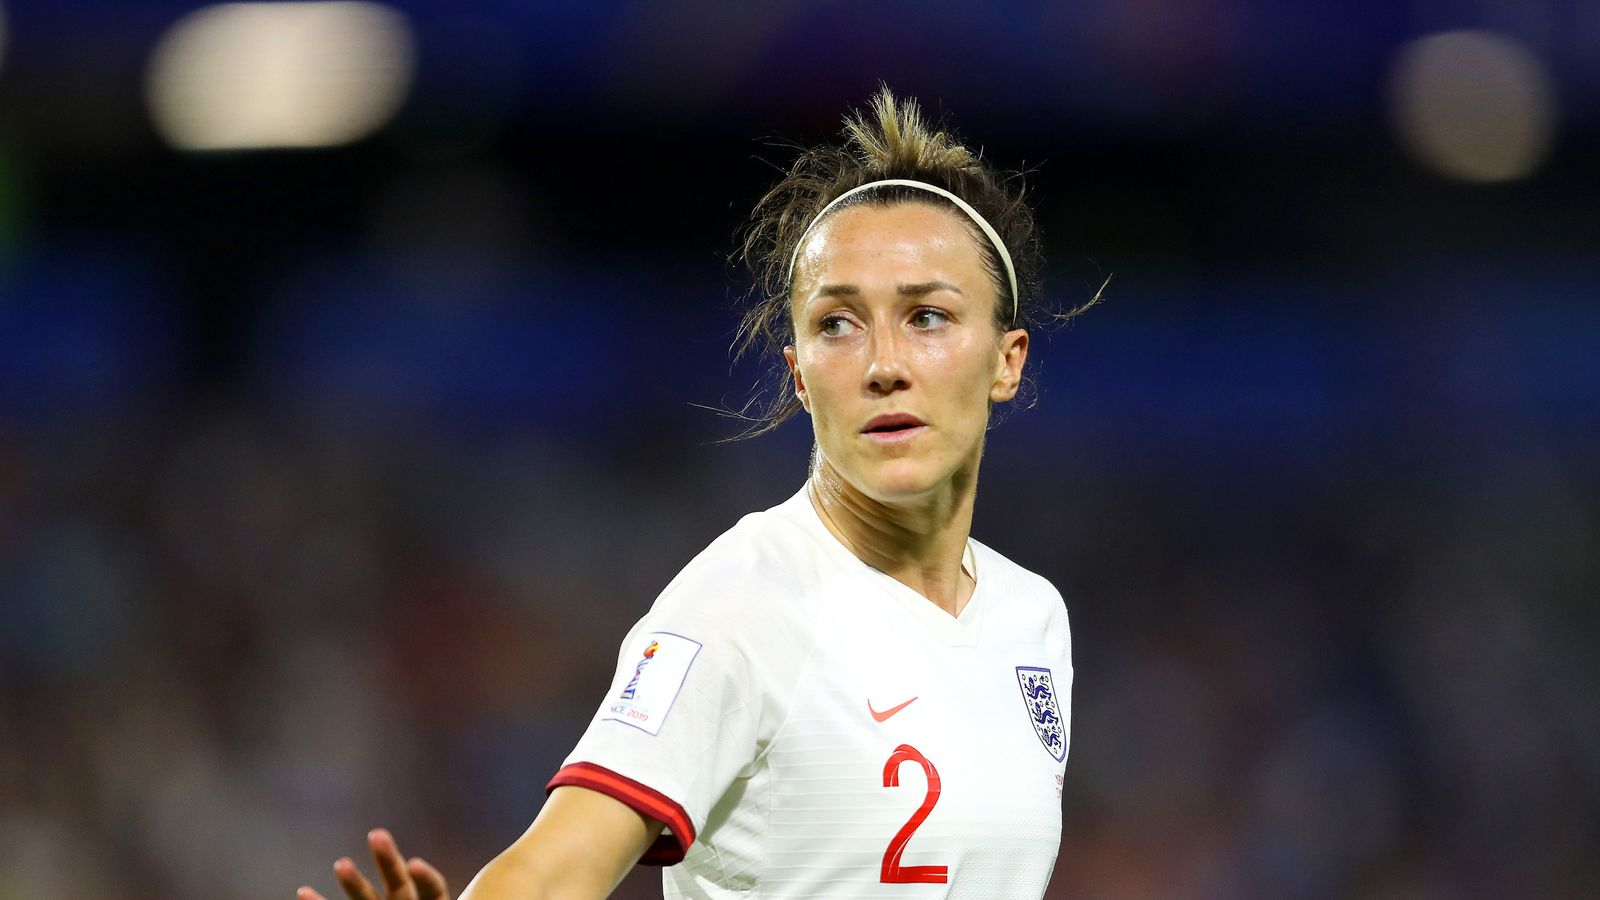 Lucy Bronze of England reacts during the 2019 FIFA Women's World Cup France Quarter Final match between Norway and England at Stade Oceane on June 27, 2019 in Le Havre, France